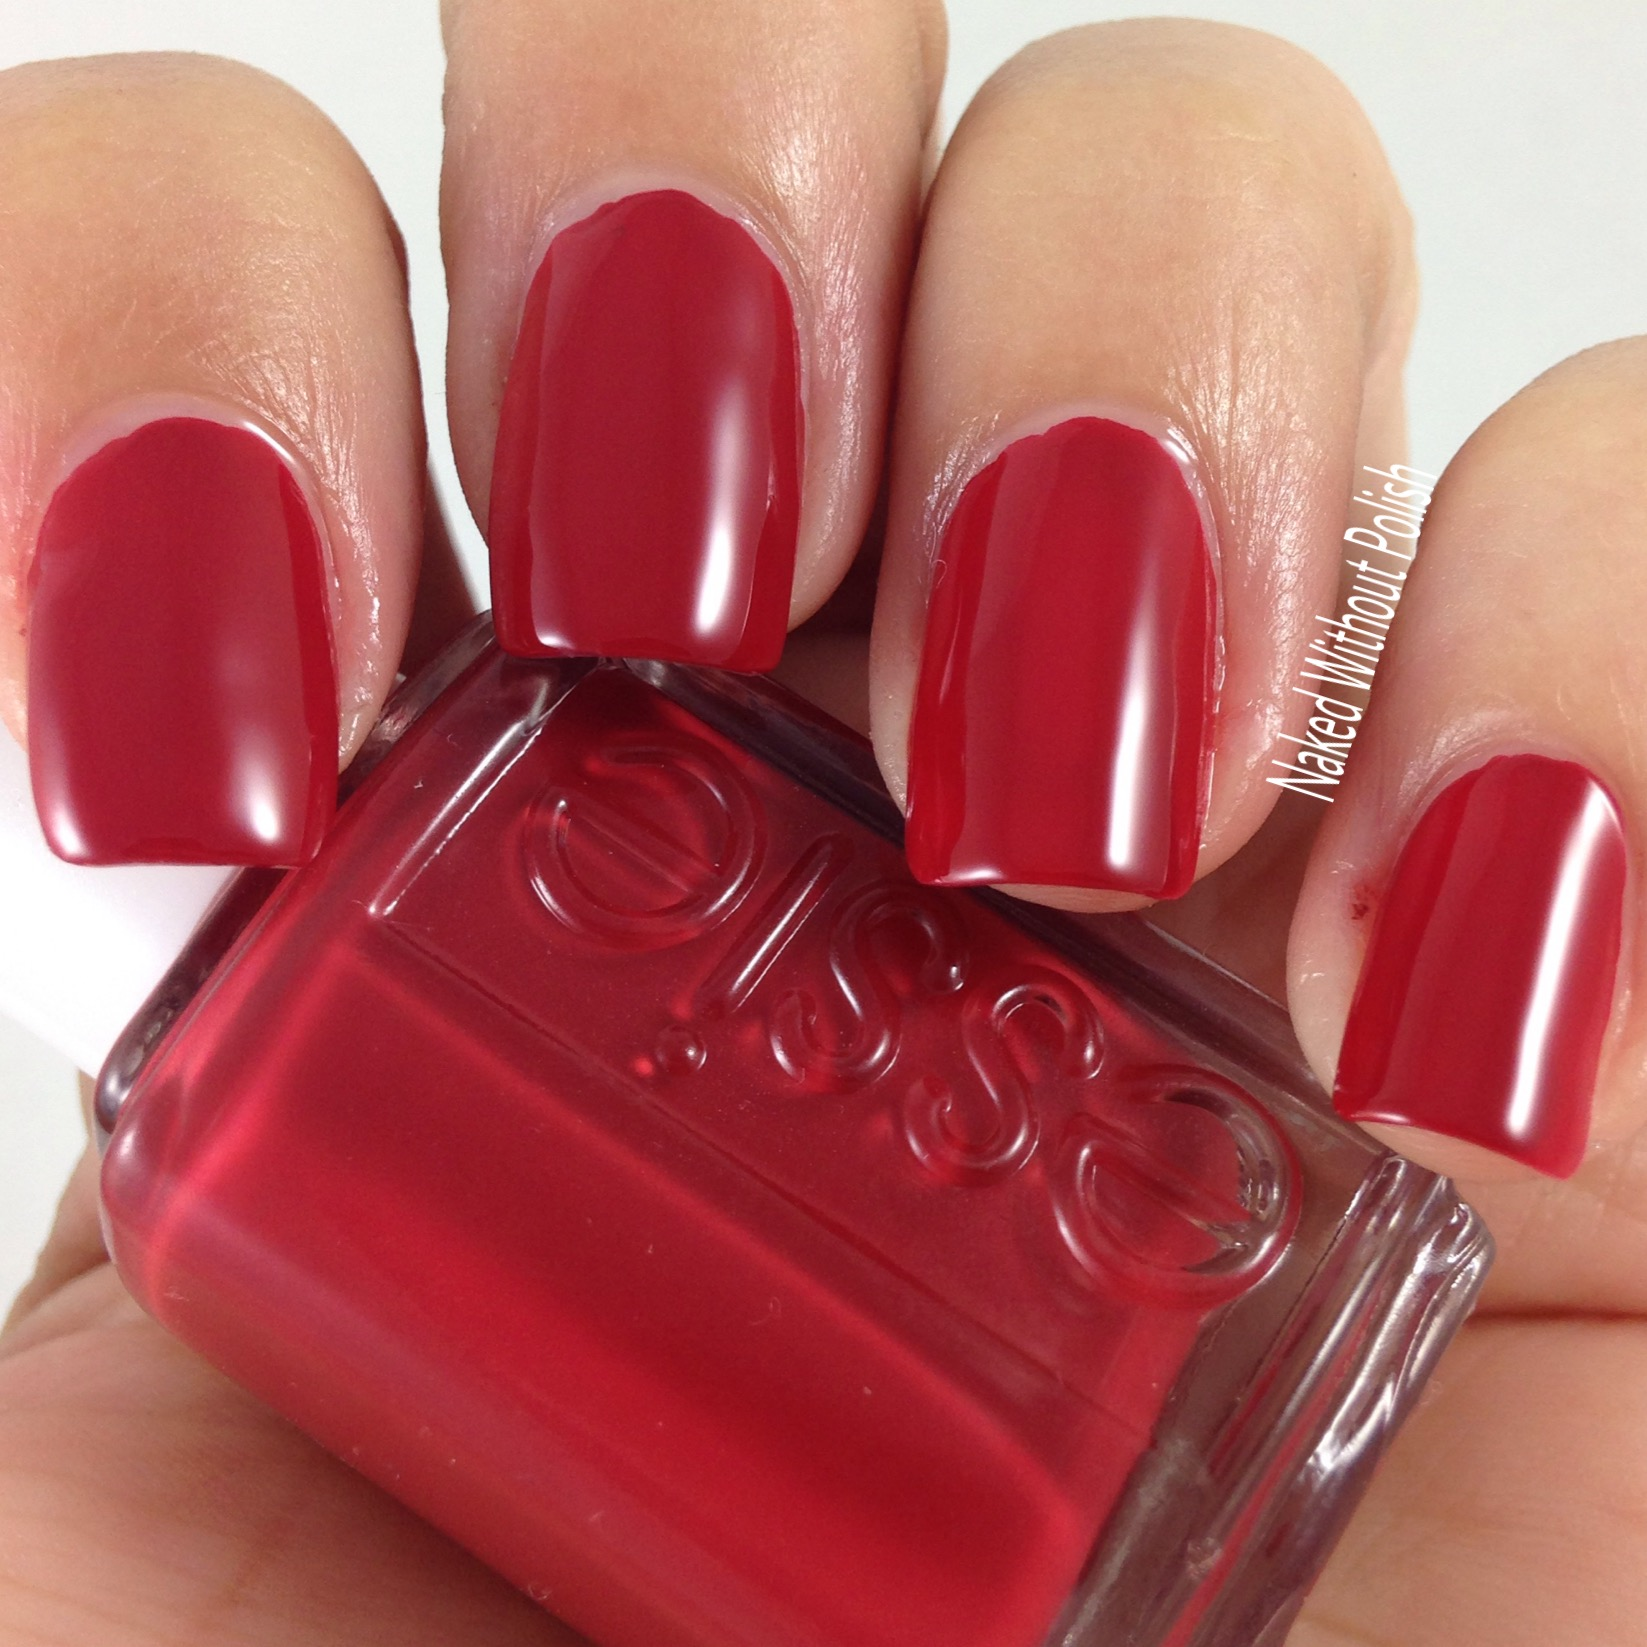 Essie-Preen-Me-With-the-Band-4